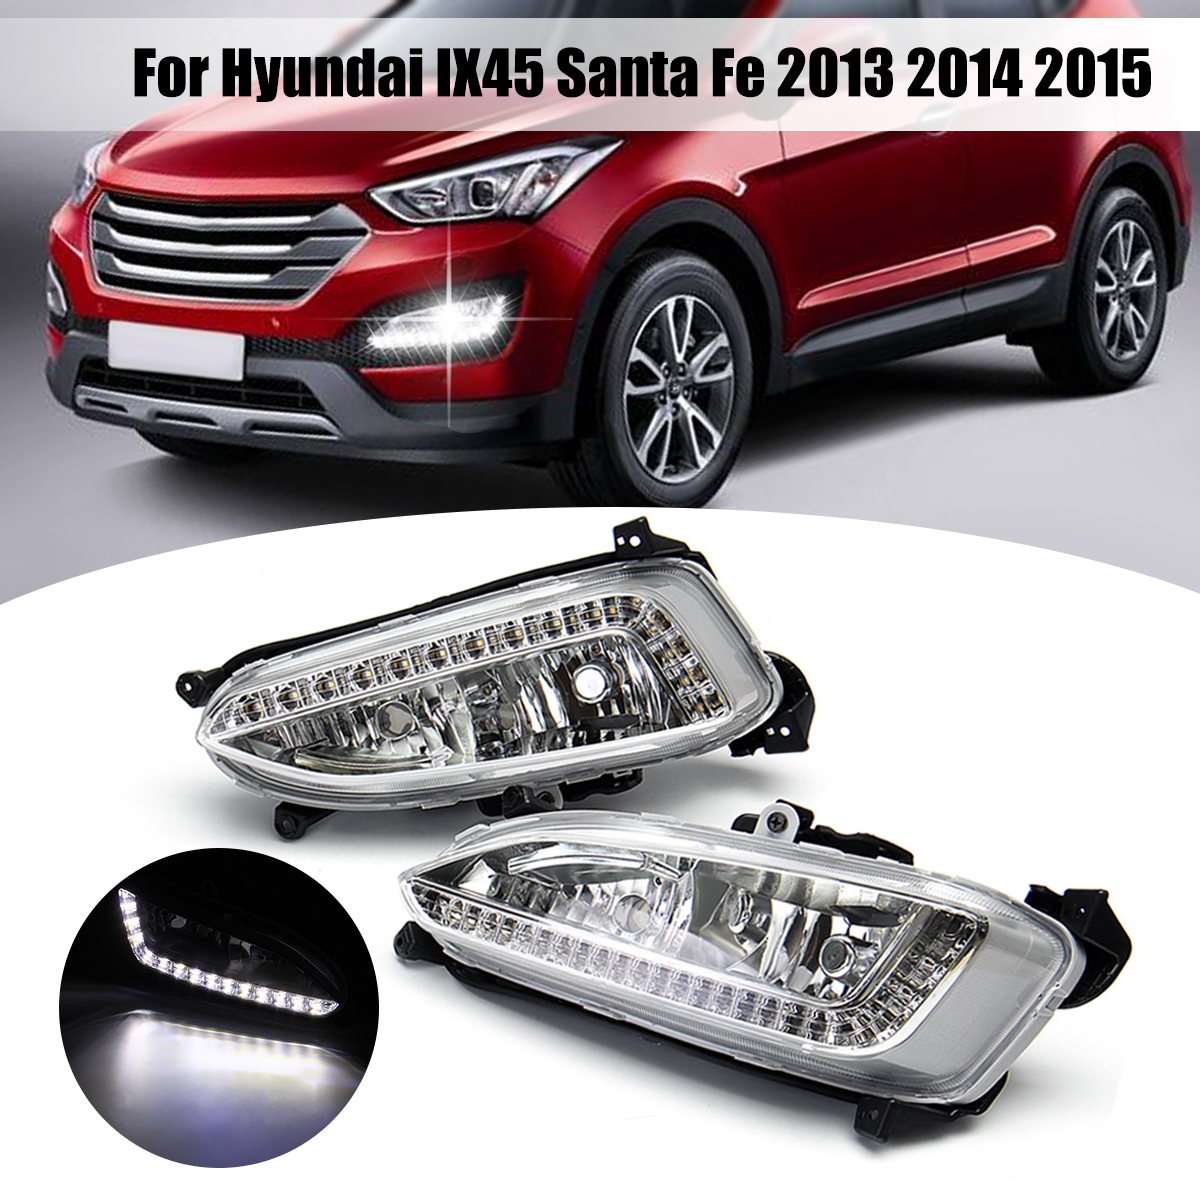 1 Pair 12V LED Car Fog Light Assembly for hyundai IX45 Santa Fe 2013 2014 2015 DRL Daytime Running Light Auto Accessories